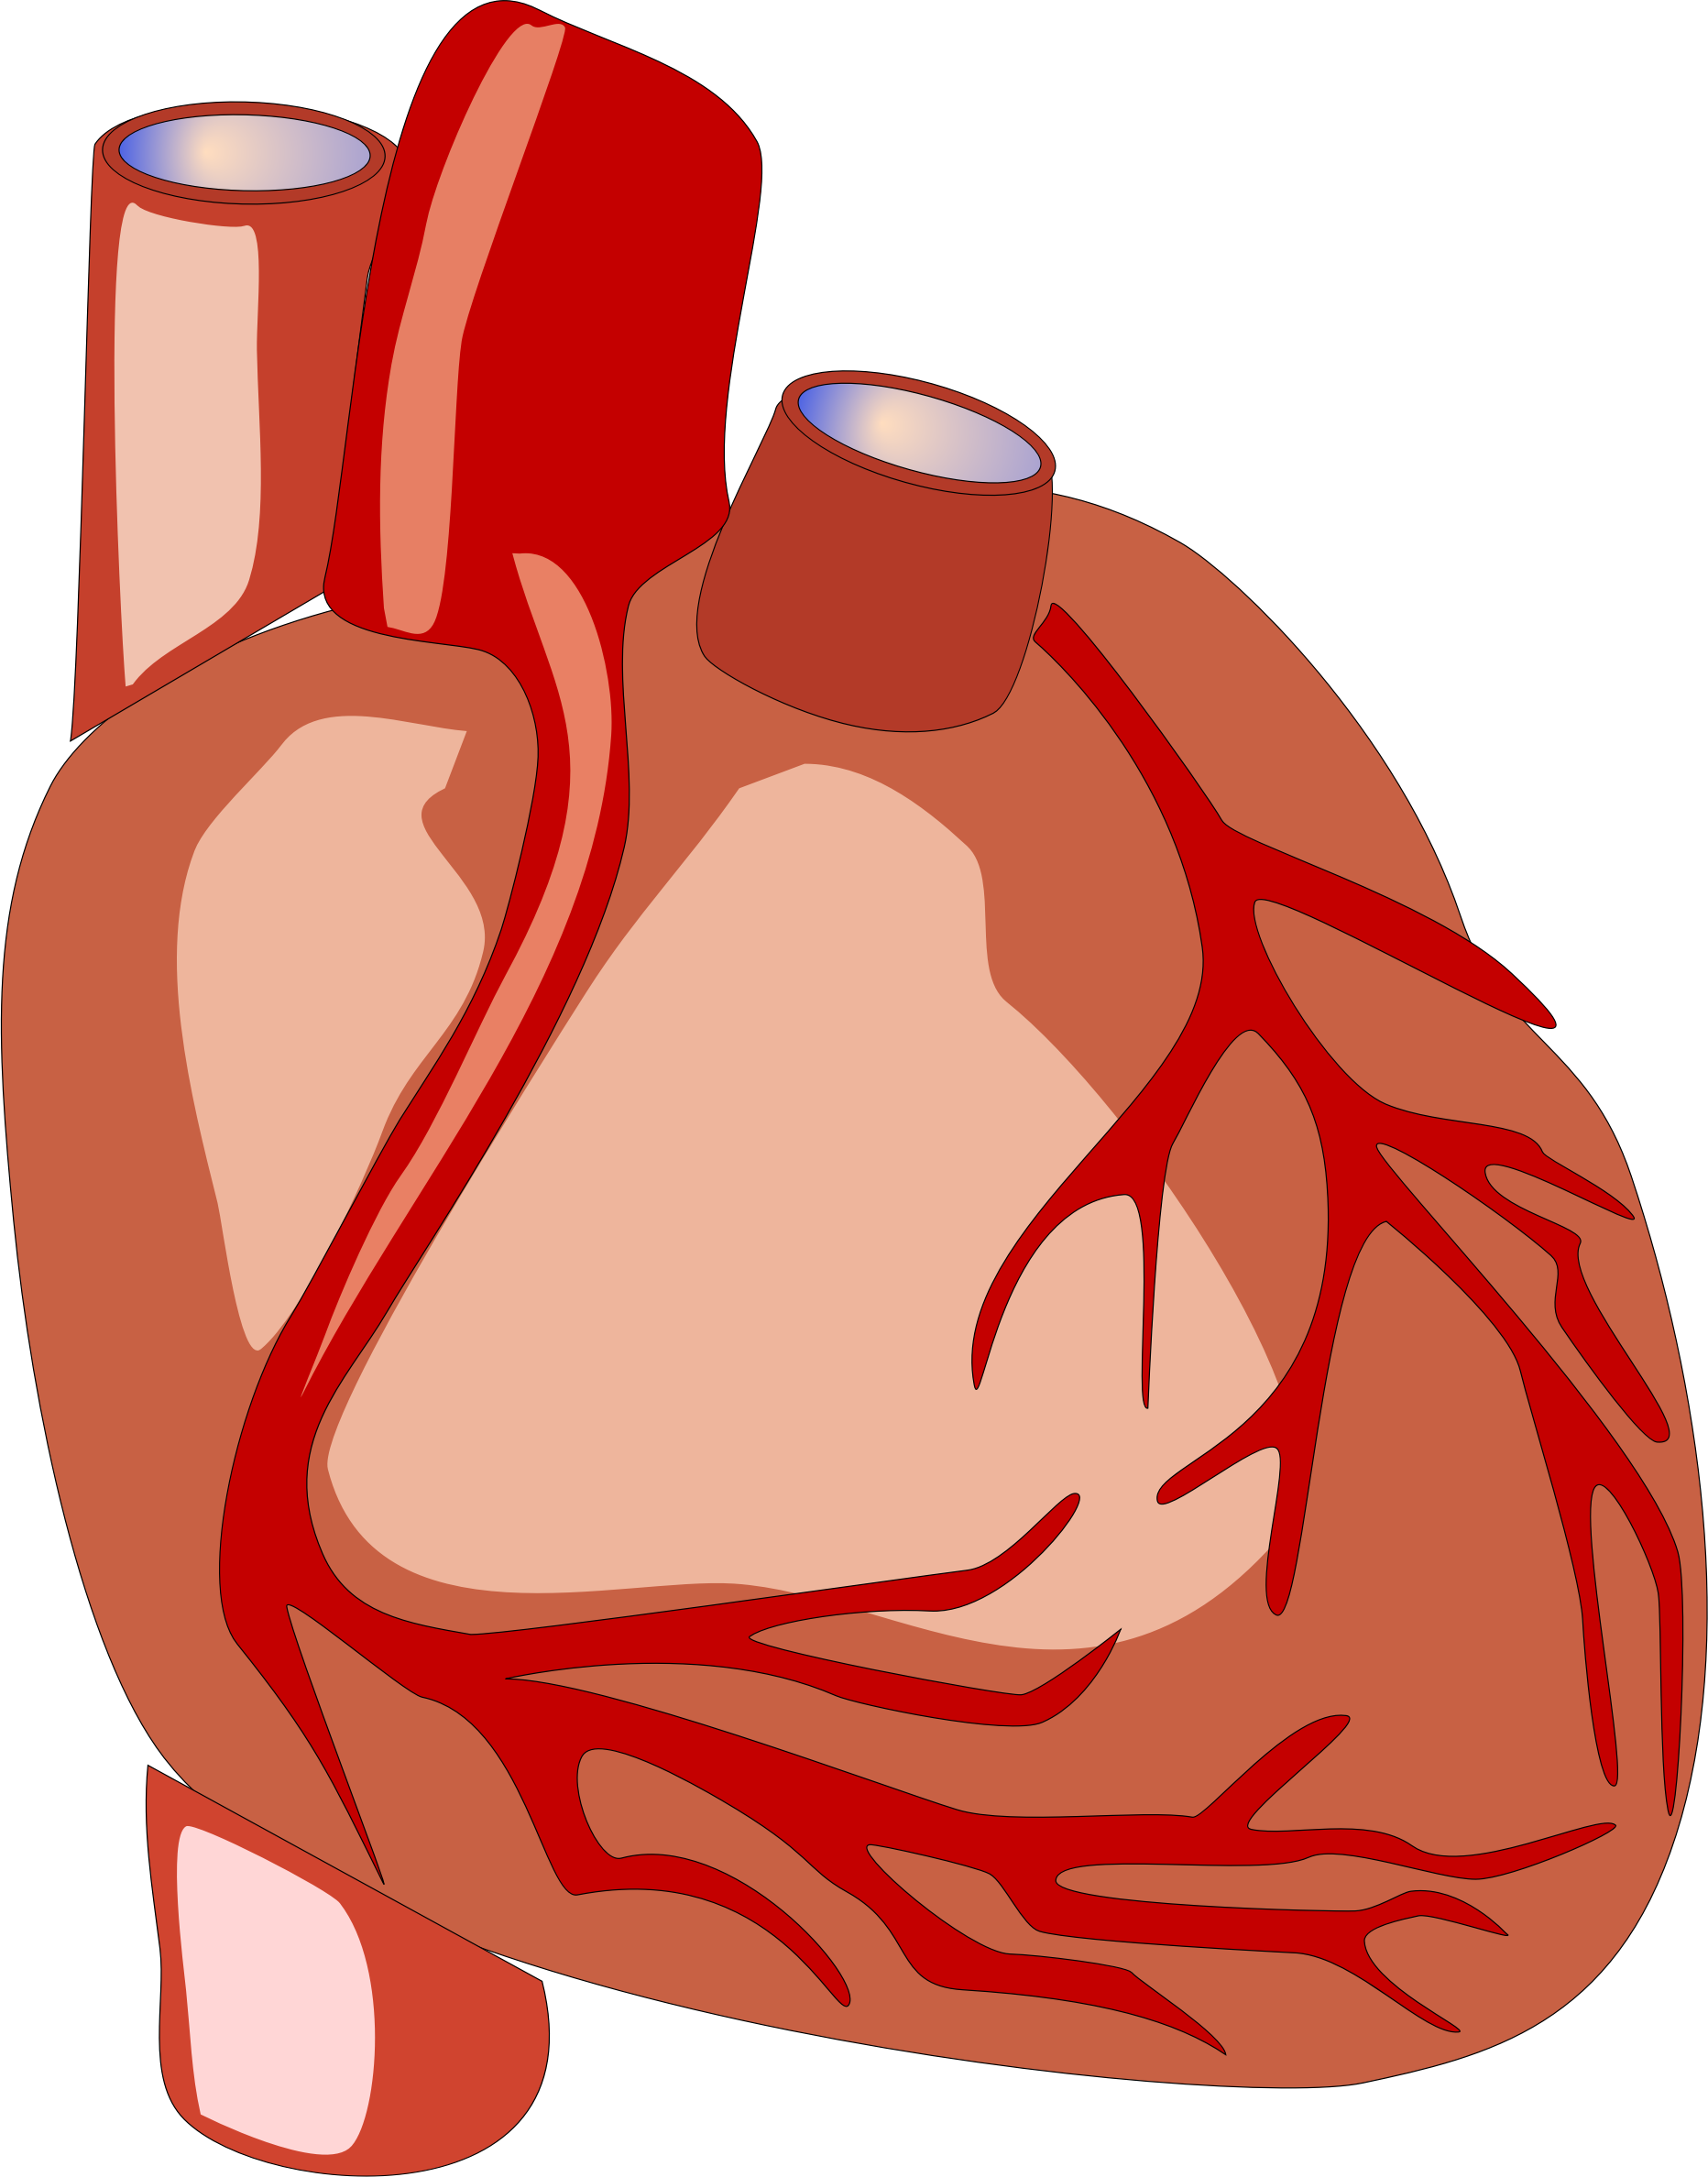 Human Heart vector file - Free Public Domain Stock Photo - CC0 Images